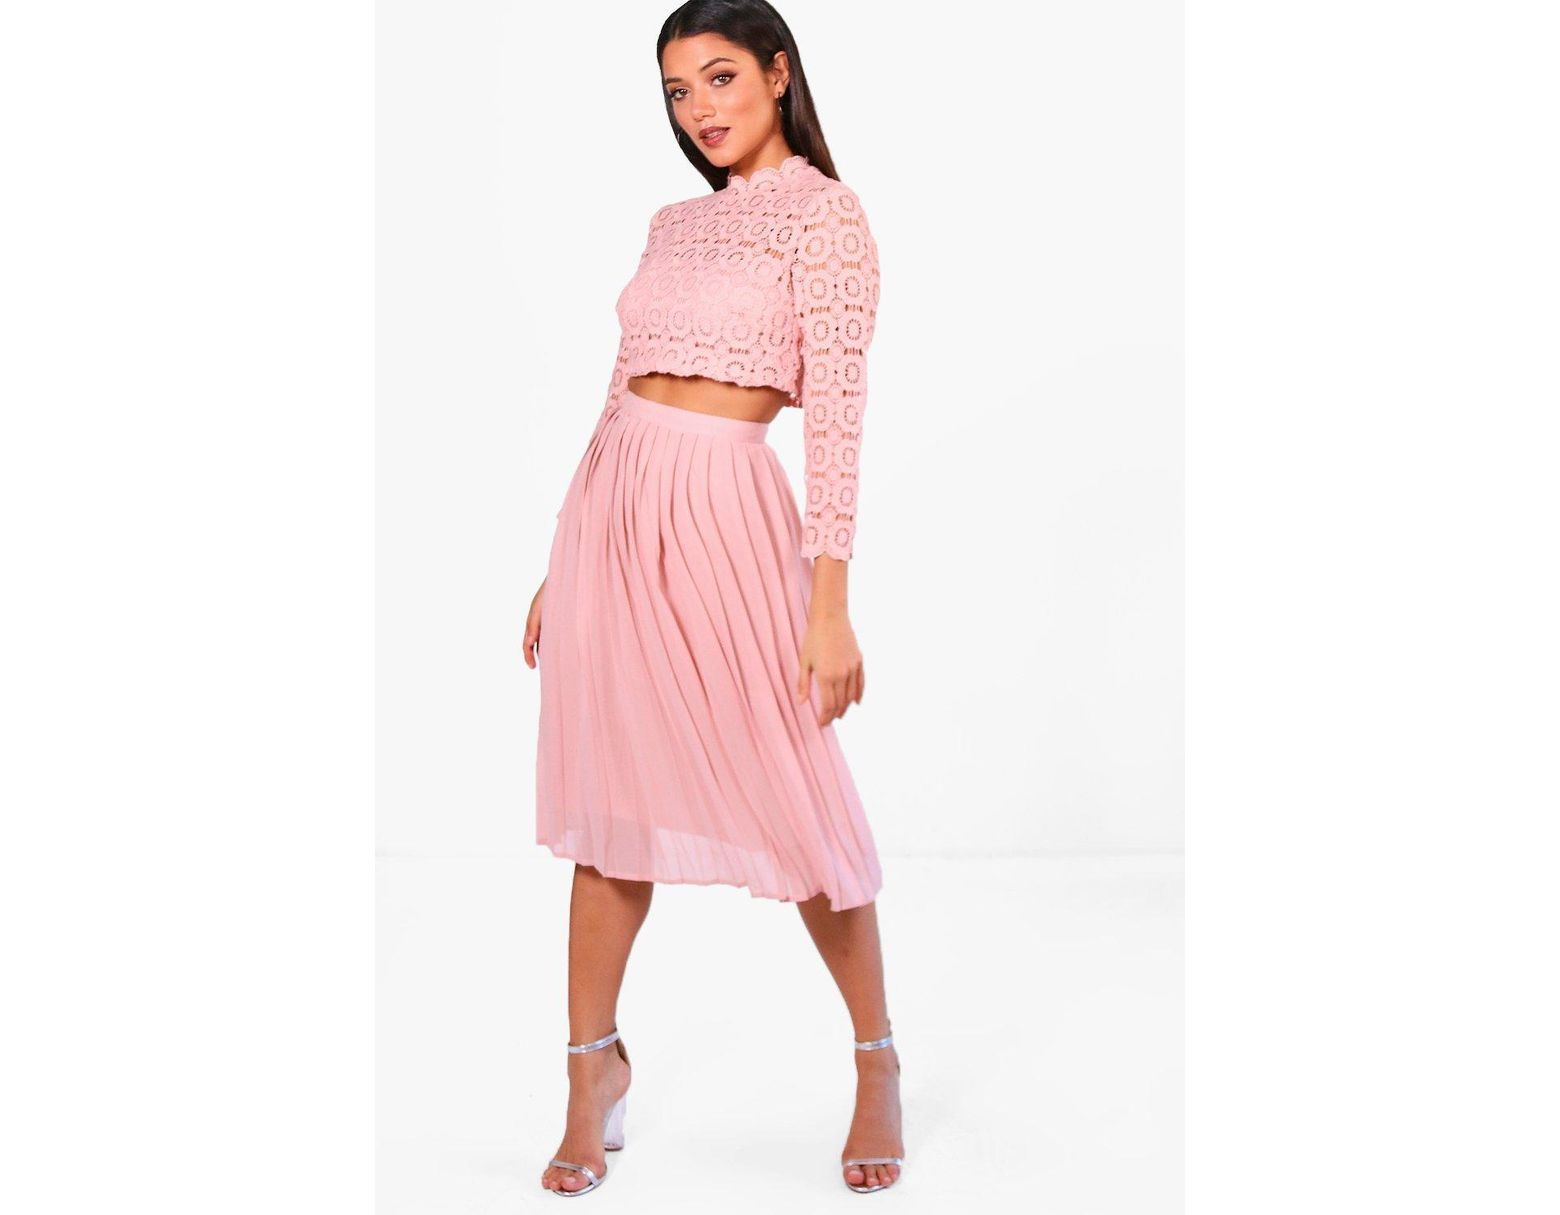 551d92216 Boohoo Boutique Lace Top And Midi Skirt Set in Pink - Lyst